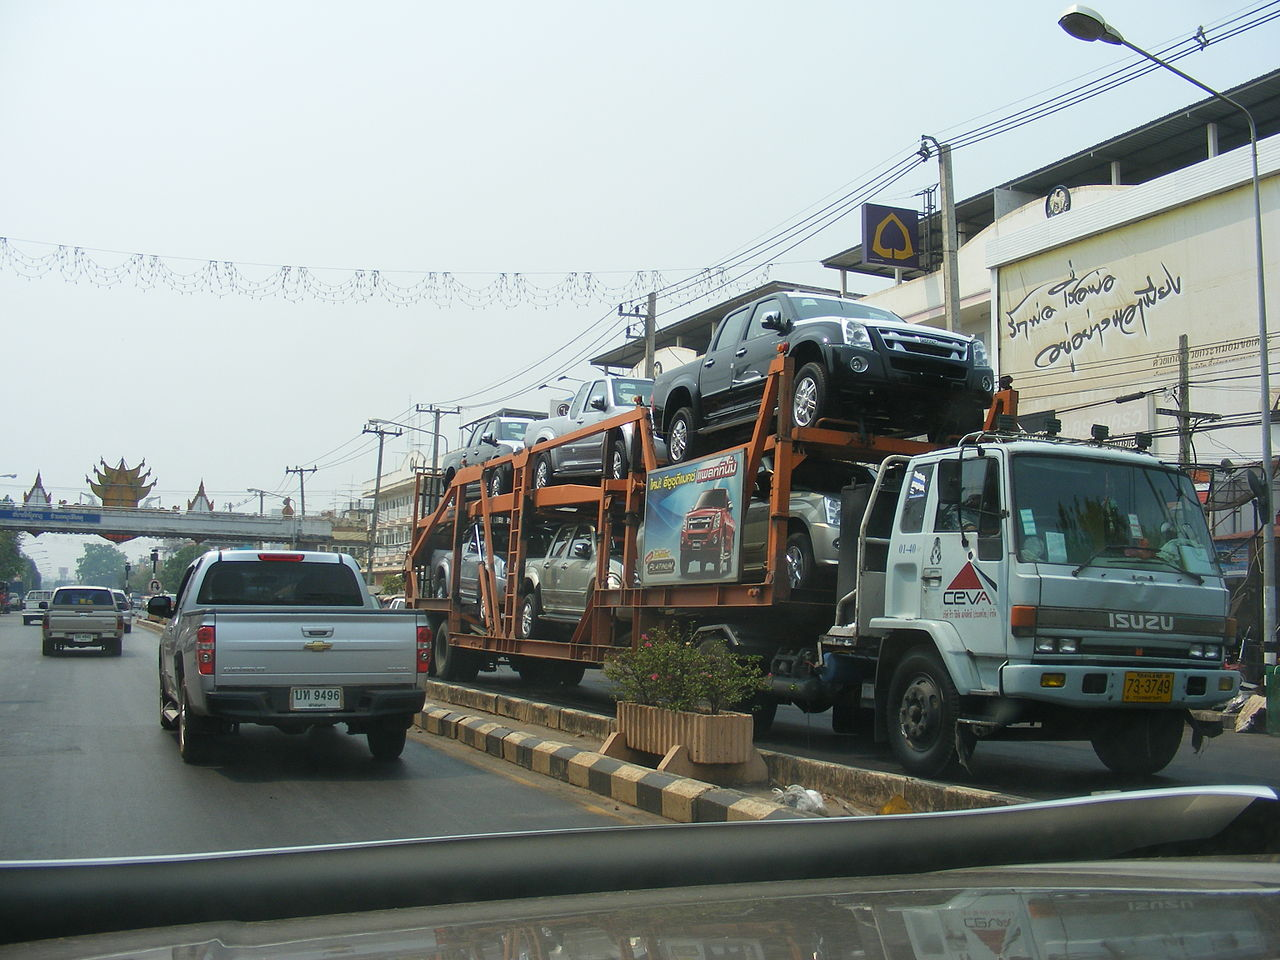 File:Isuzu Road Transport Vehicle Carries Isuzu Dmax